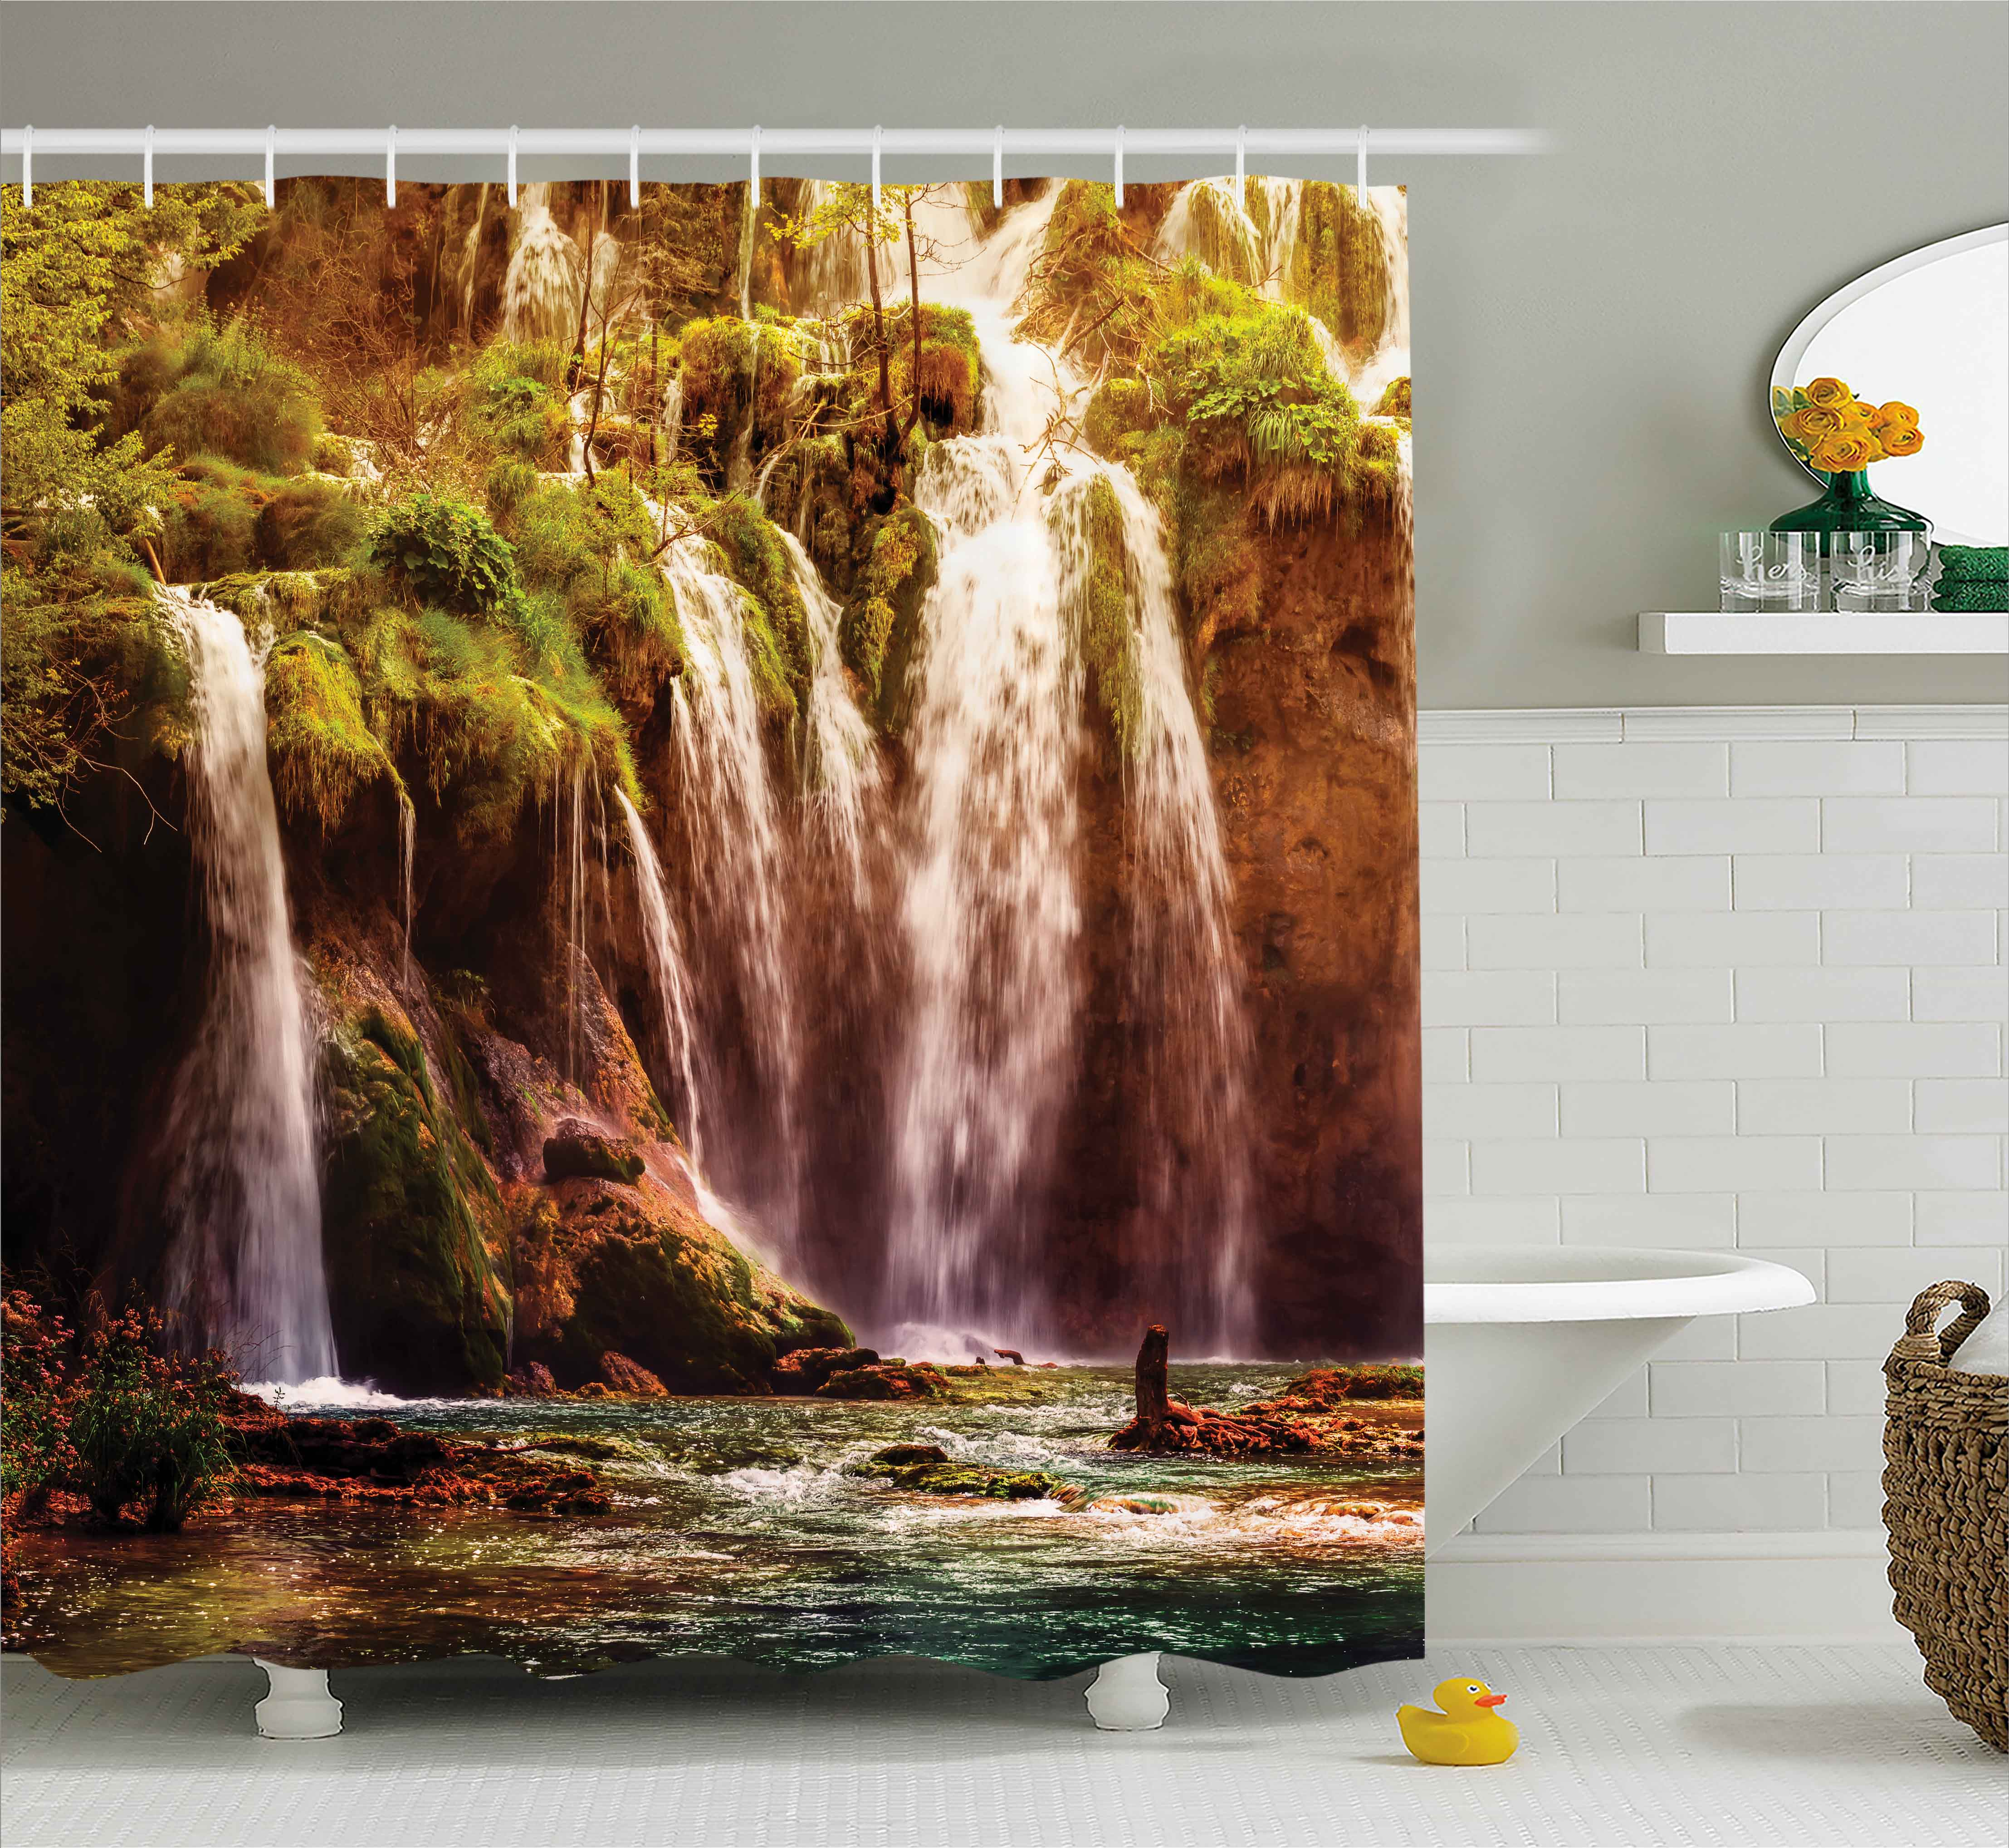 Nature Decor Shower Curtain Waterfall Forest Tree Moss